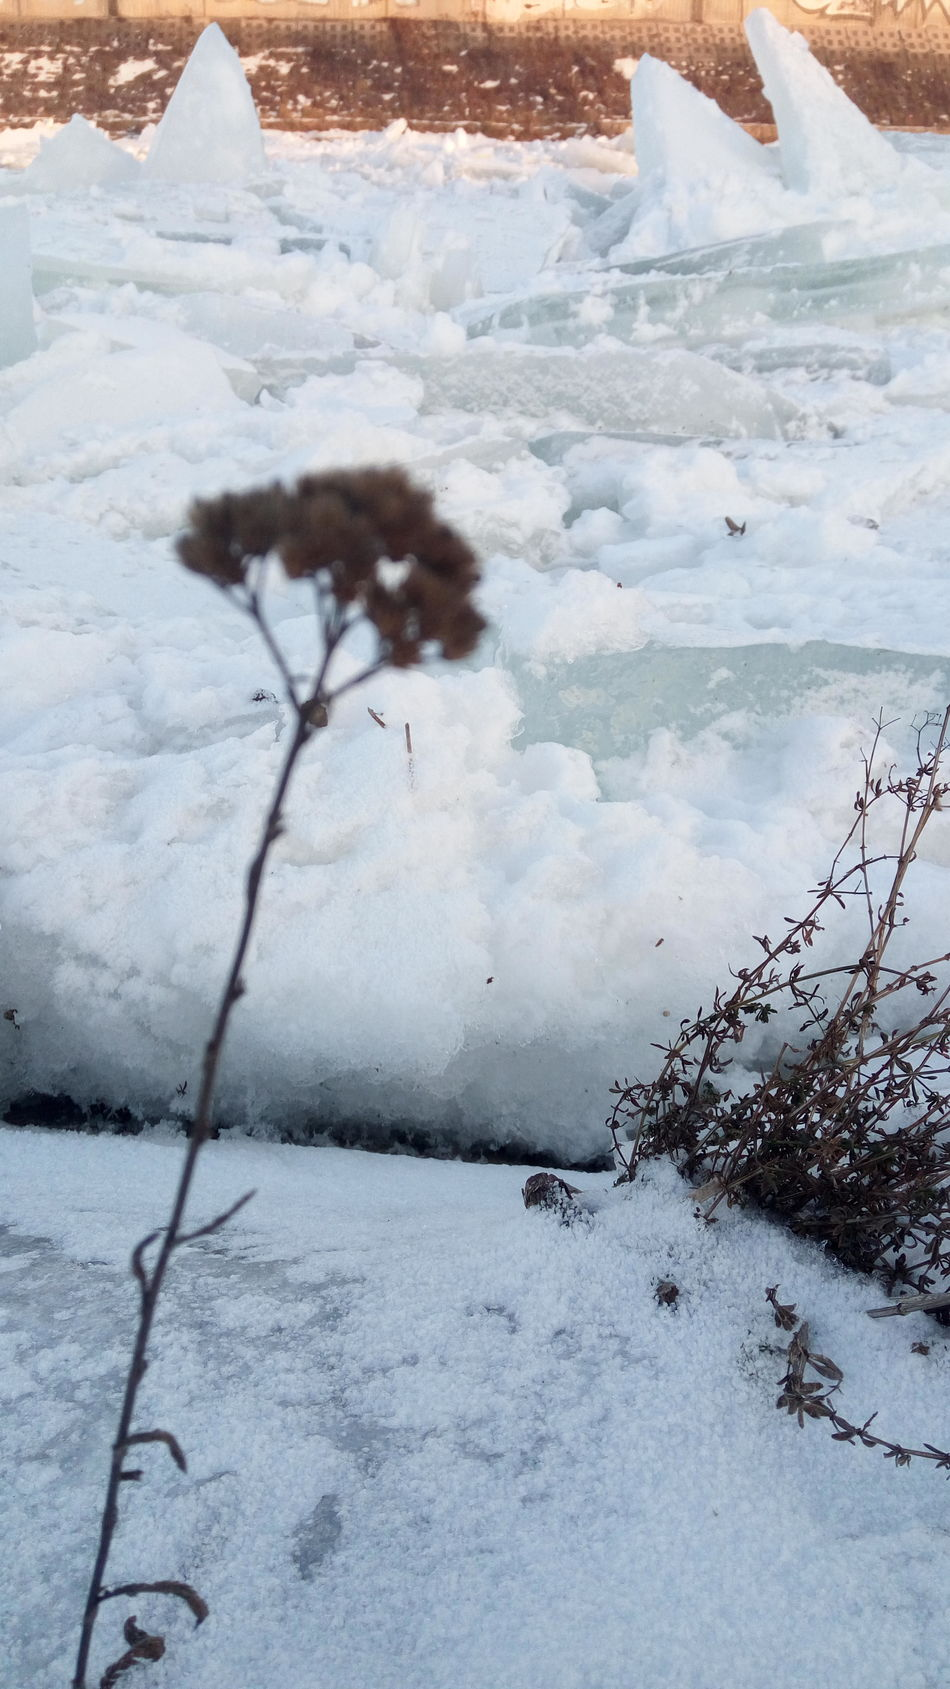 Winter Cold Temperature Day Beauty In Nature Outdoorsiced Power Of Nature No People Focus On Background FocusOn Iced River ❄